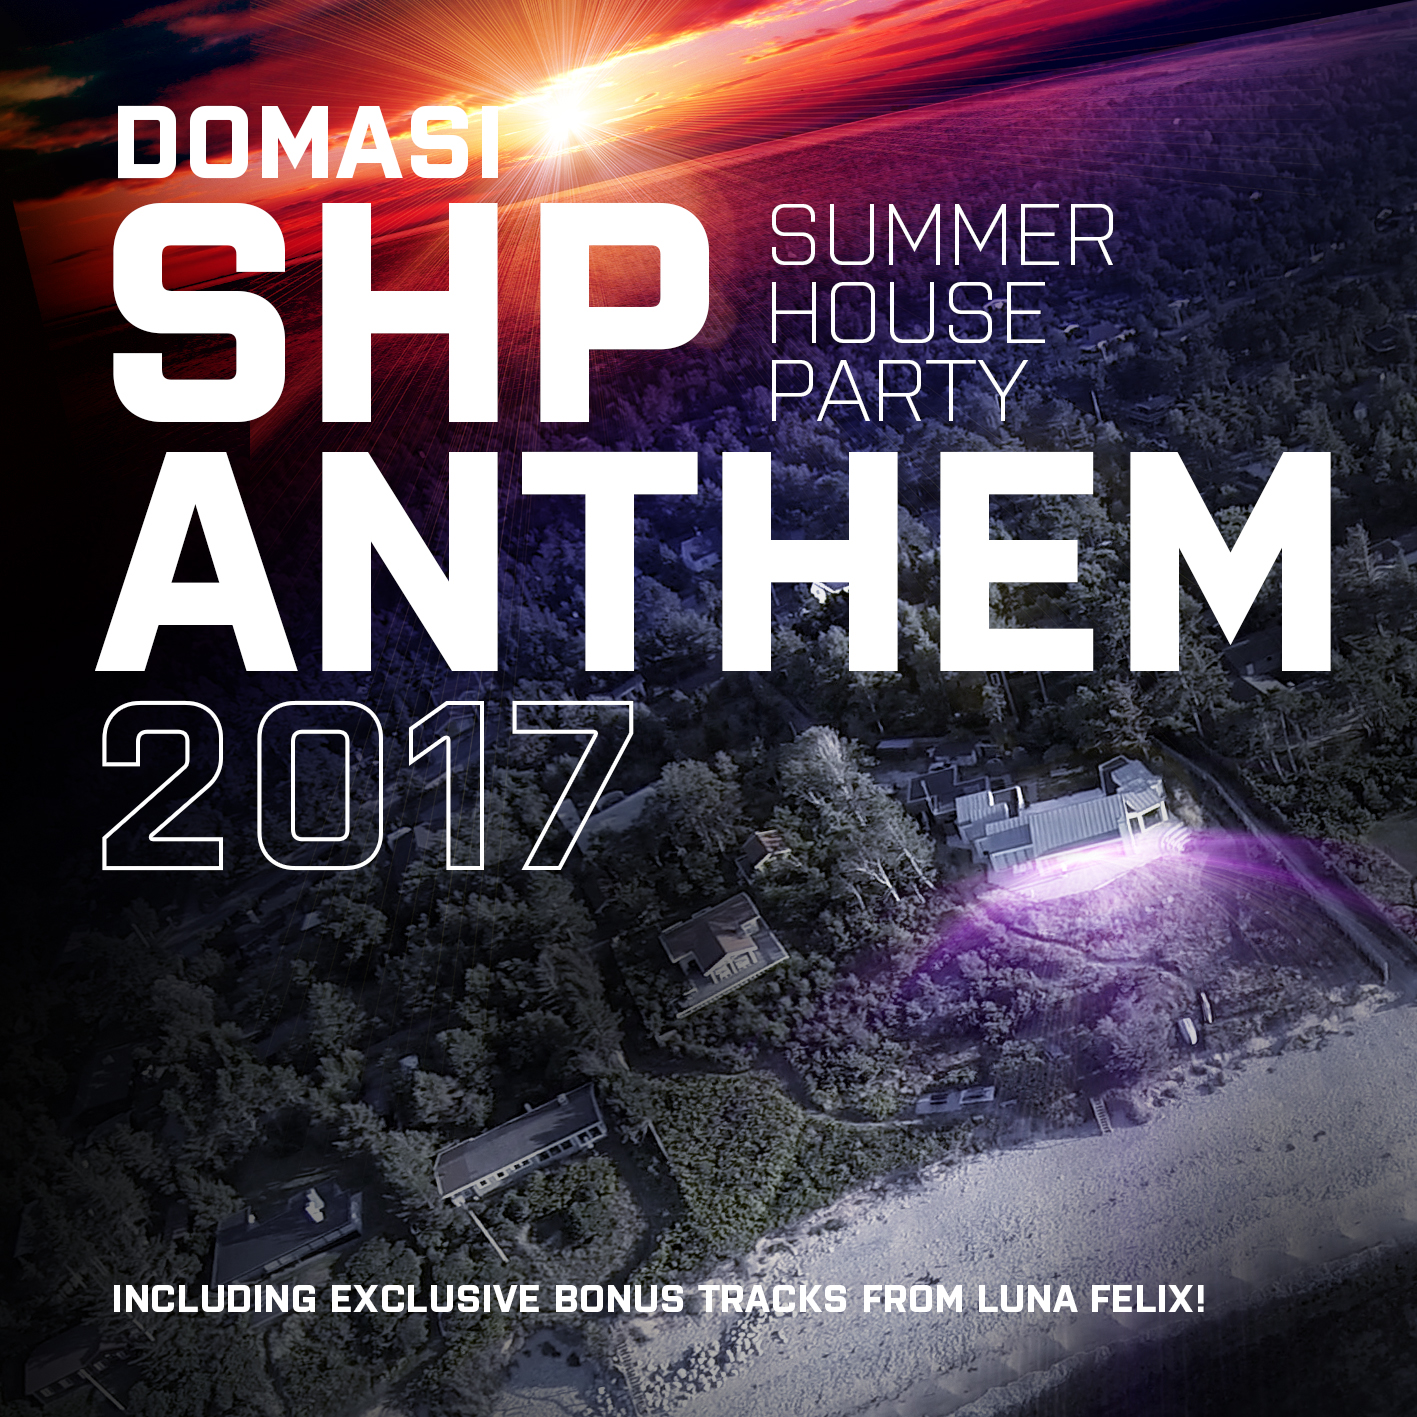 Domasi s h p anthem 2017 idp for Classic house anthems